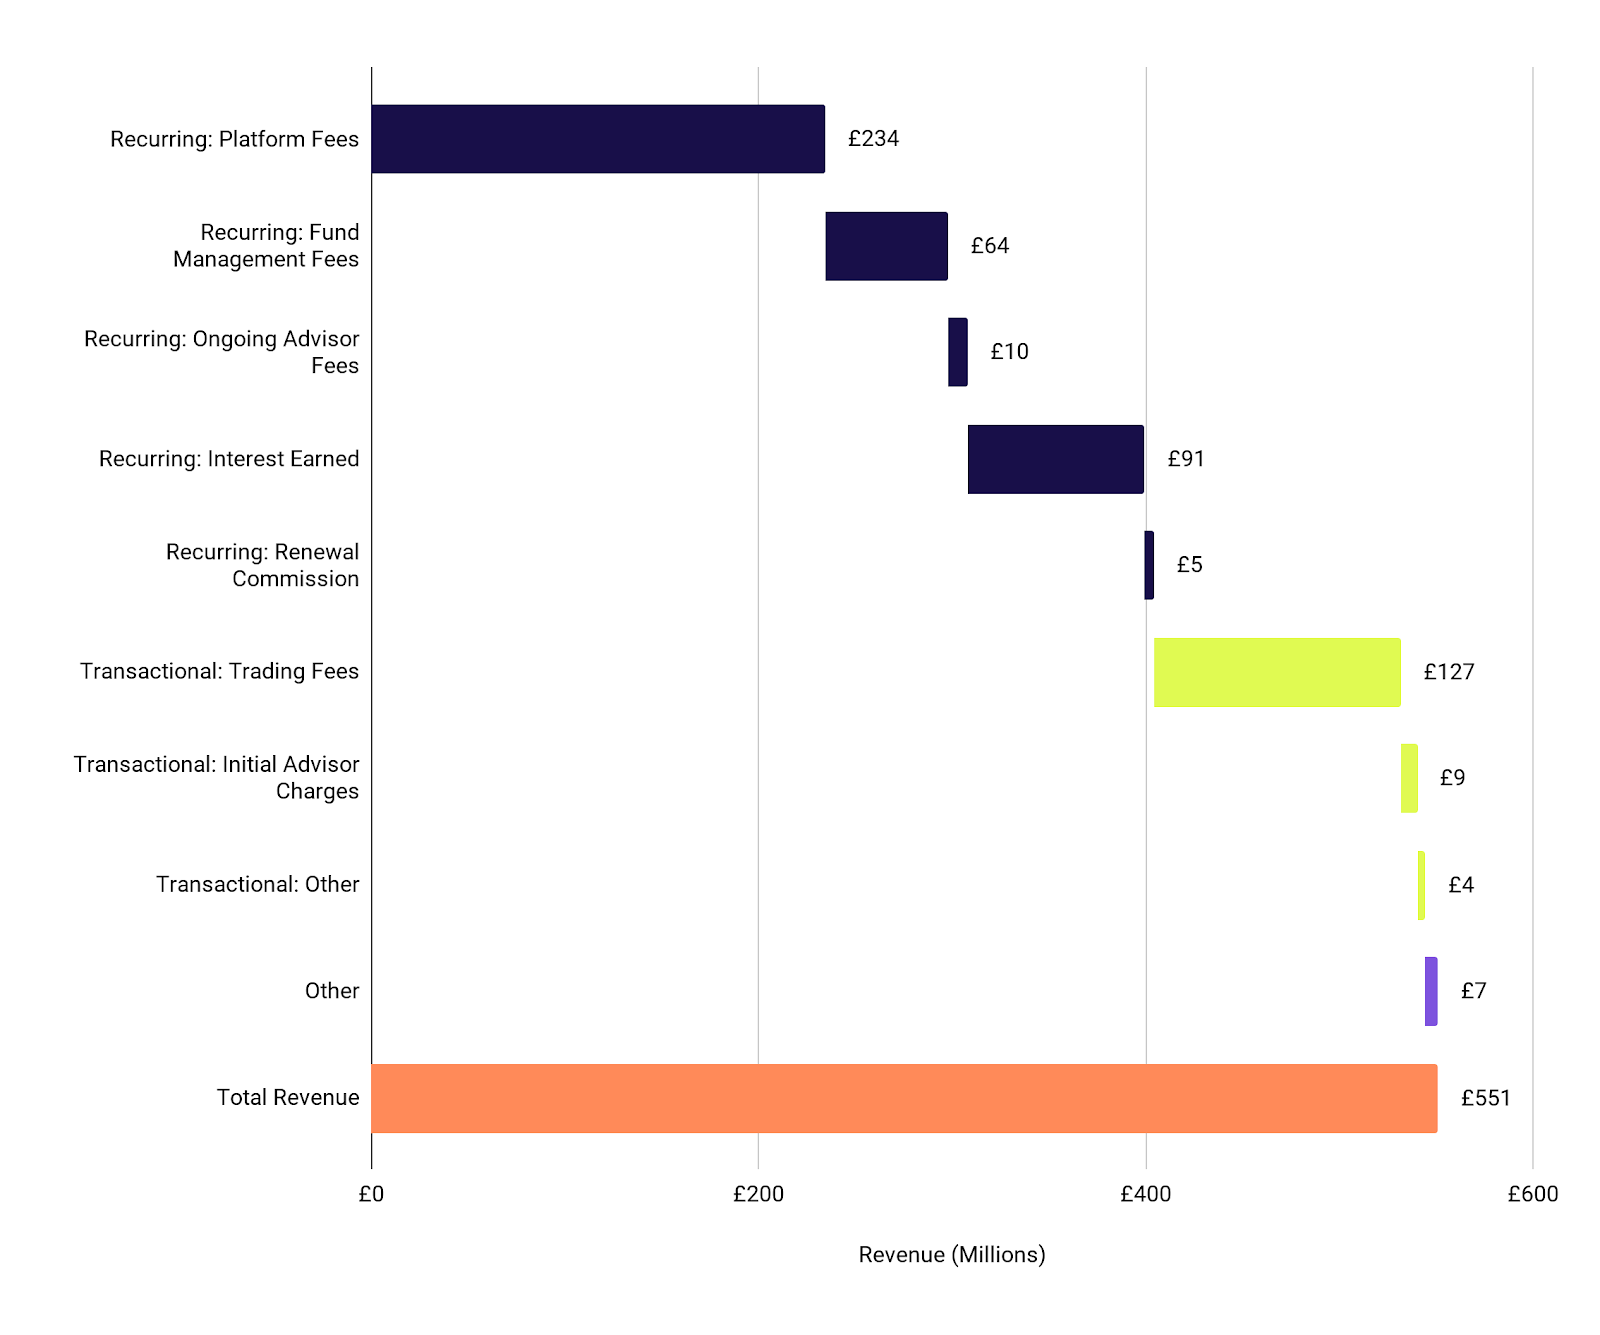 Hargreaves Lansdown Revenue by Type